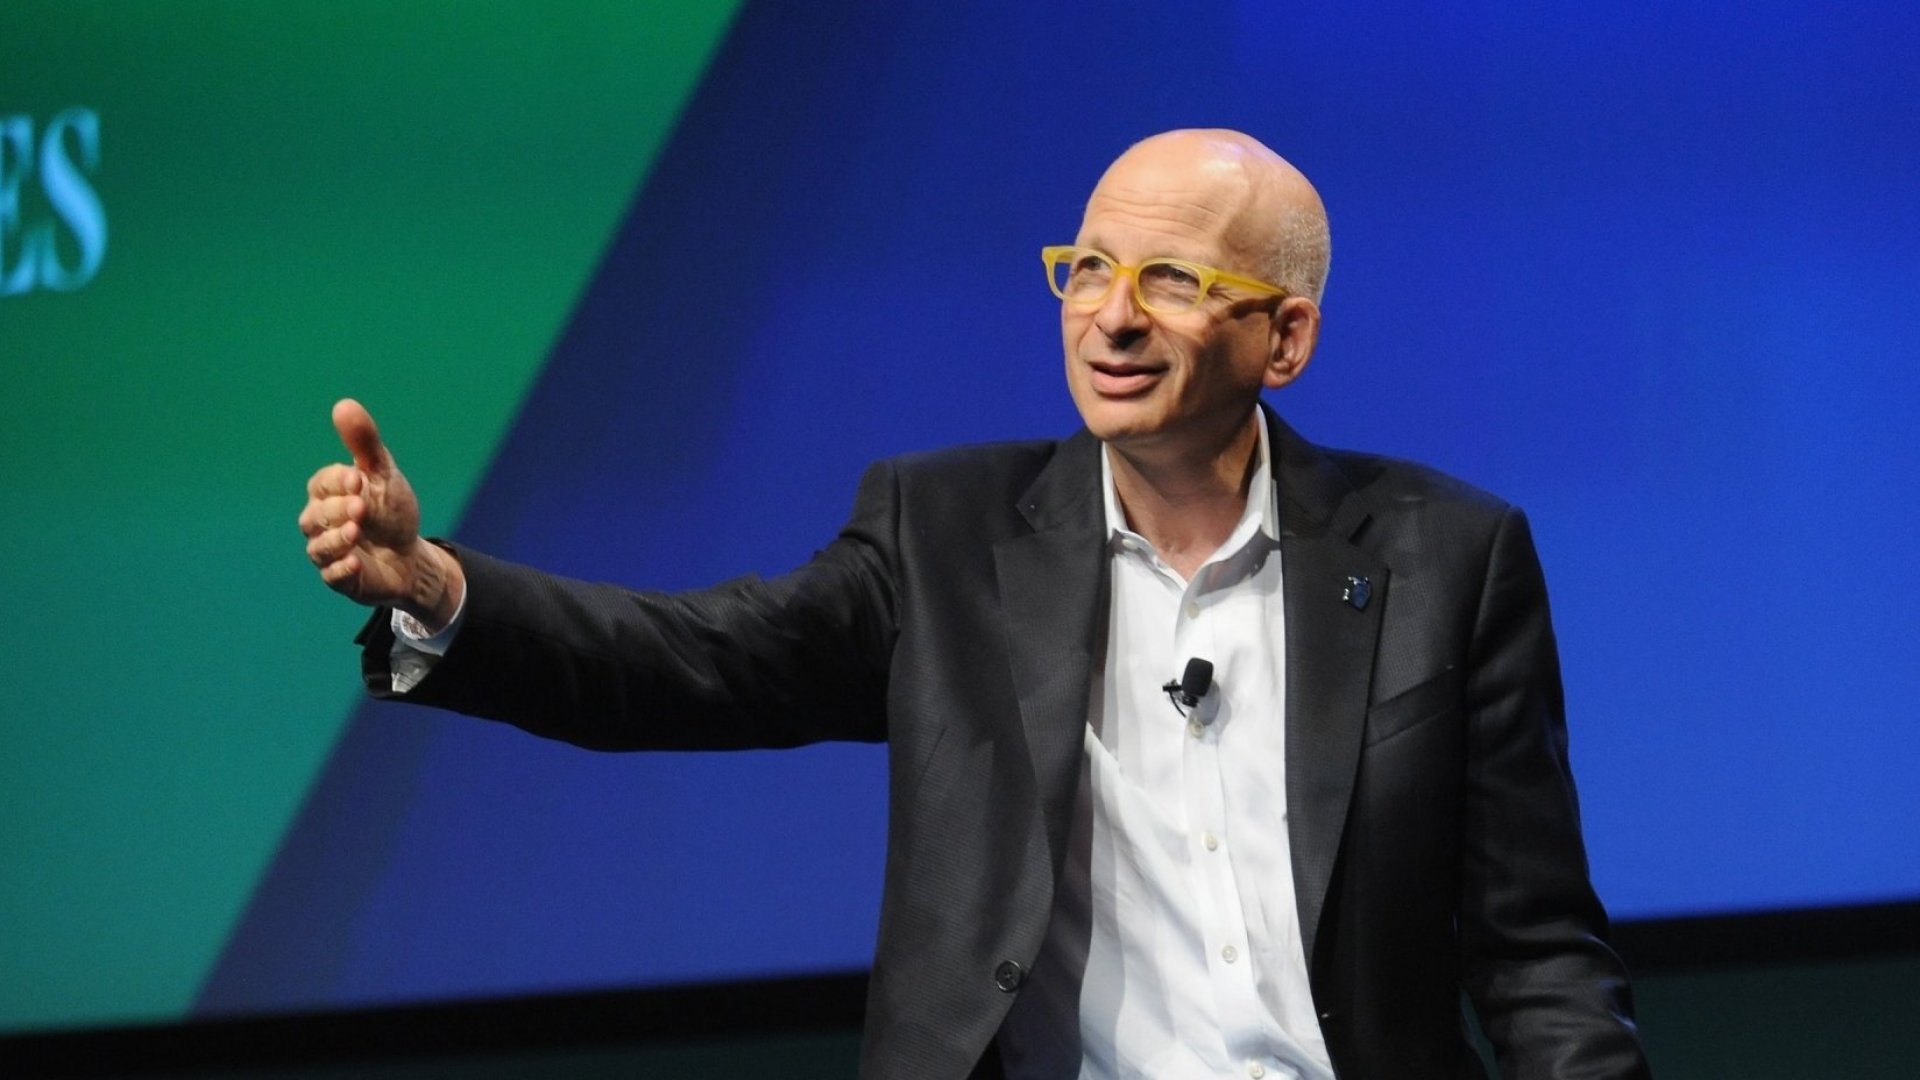 The Best Takeaways for Marketers From Seth Godin's Latest Book